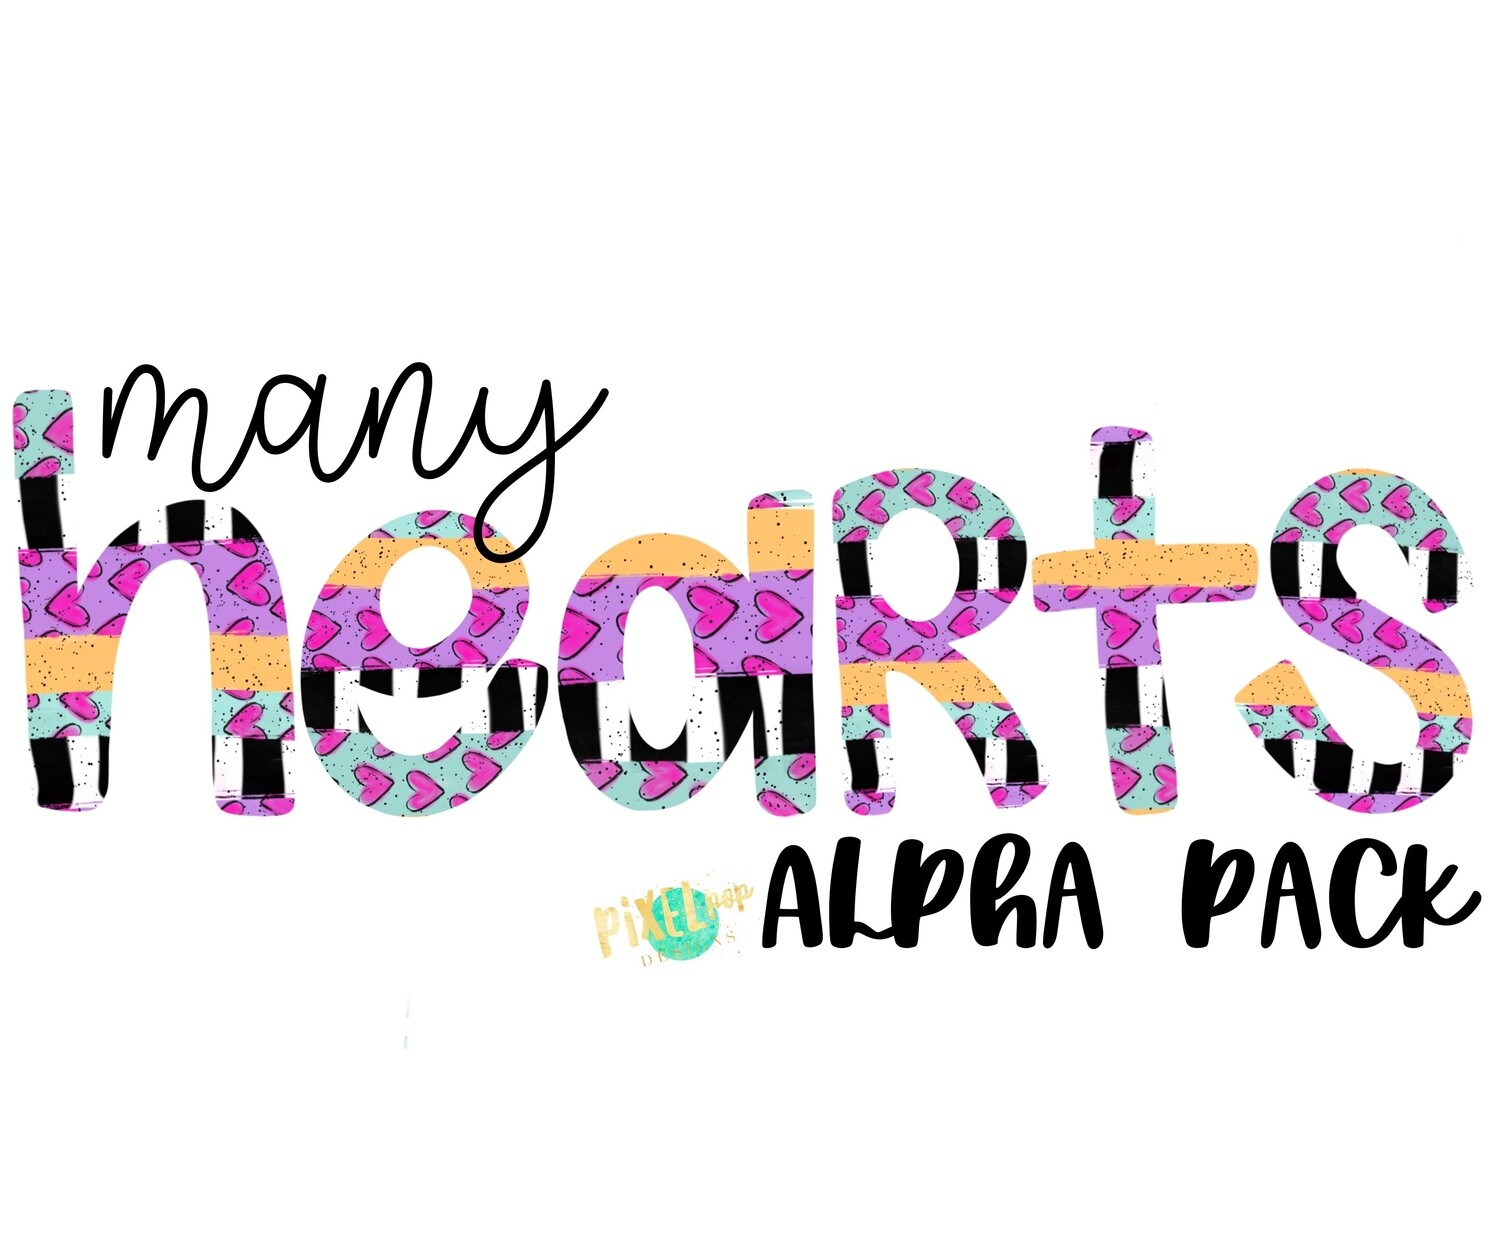 Many Hearts Valentine Hand Drawn Alphabet Letter PNG Set | Alphapack Font | PNG | Art | Sublimation Doodle Letter | Transfer Letters